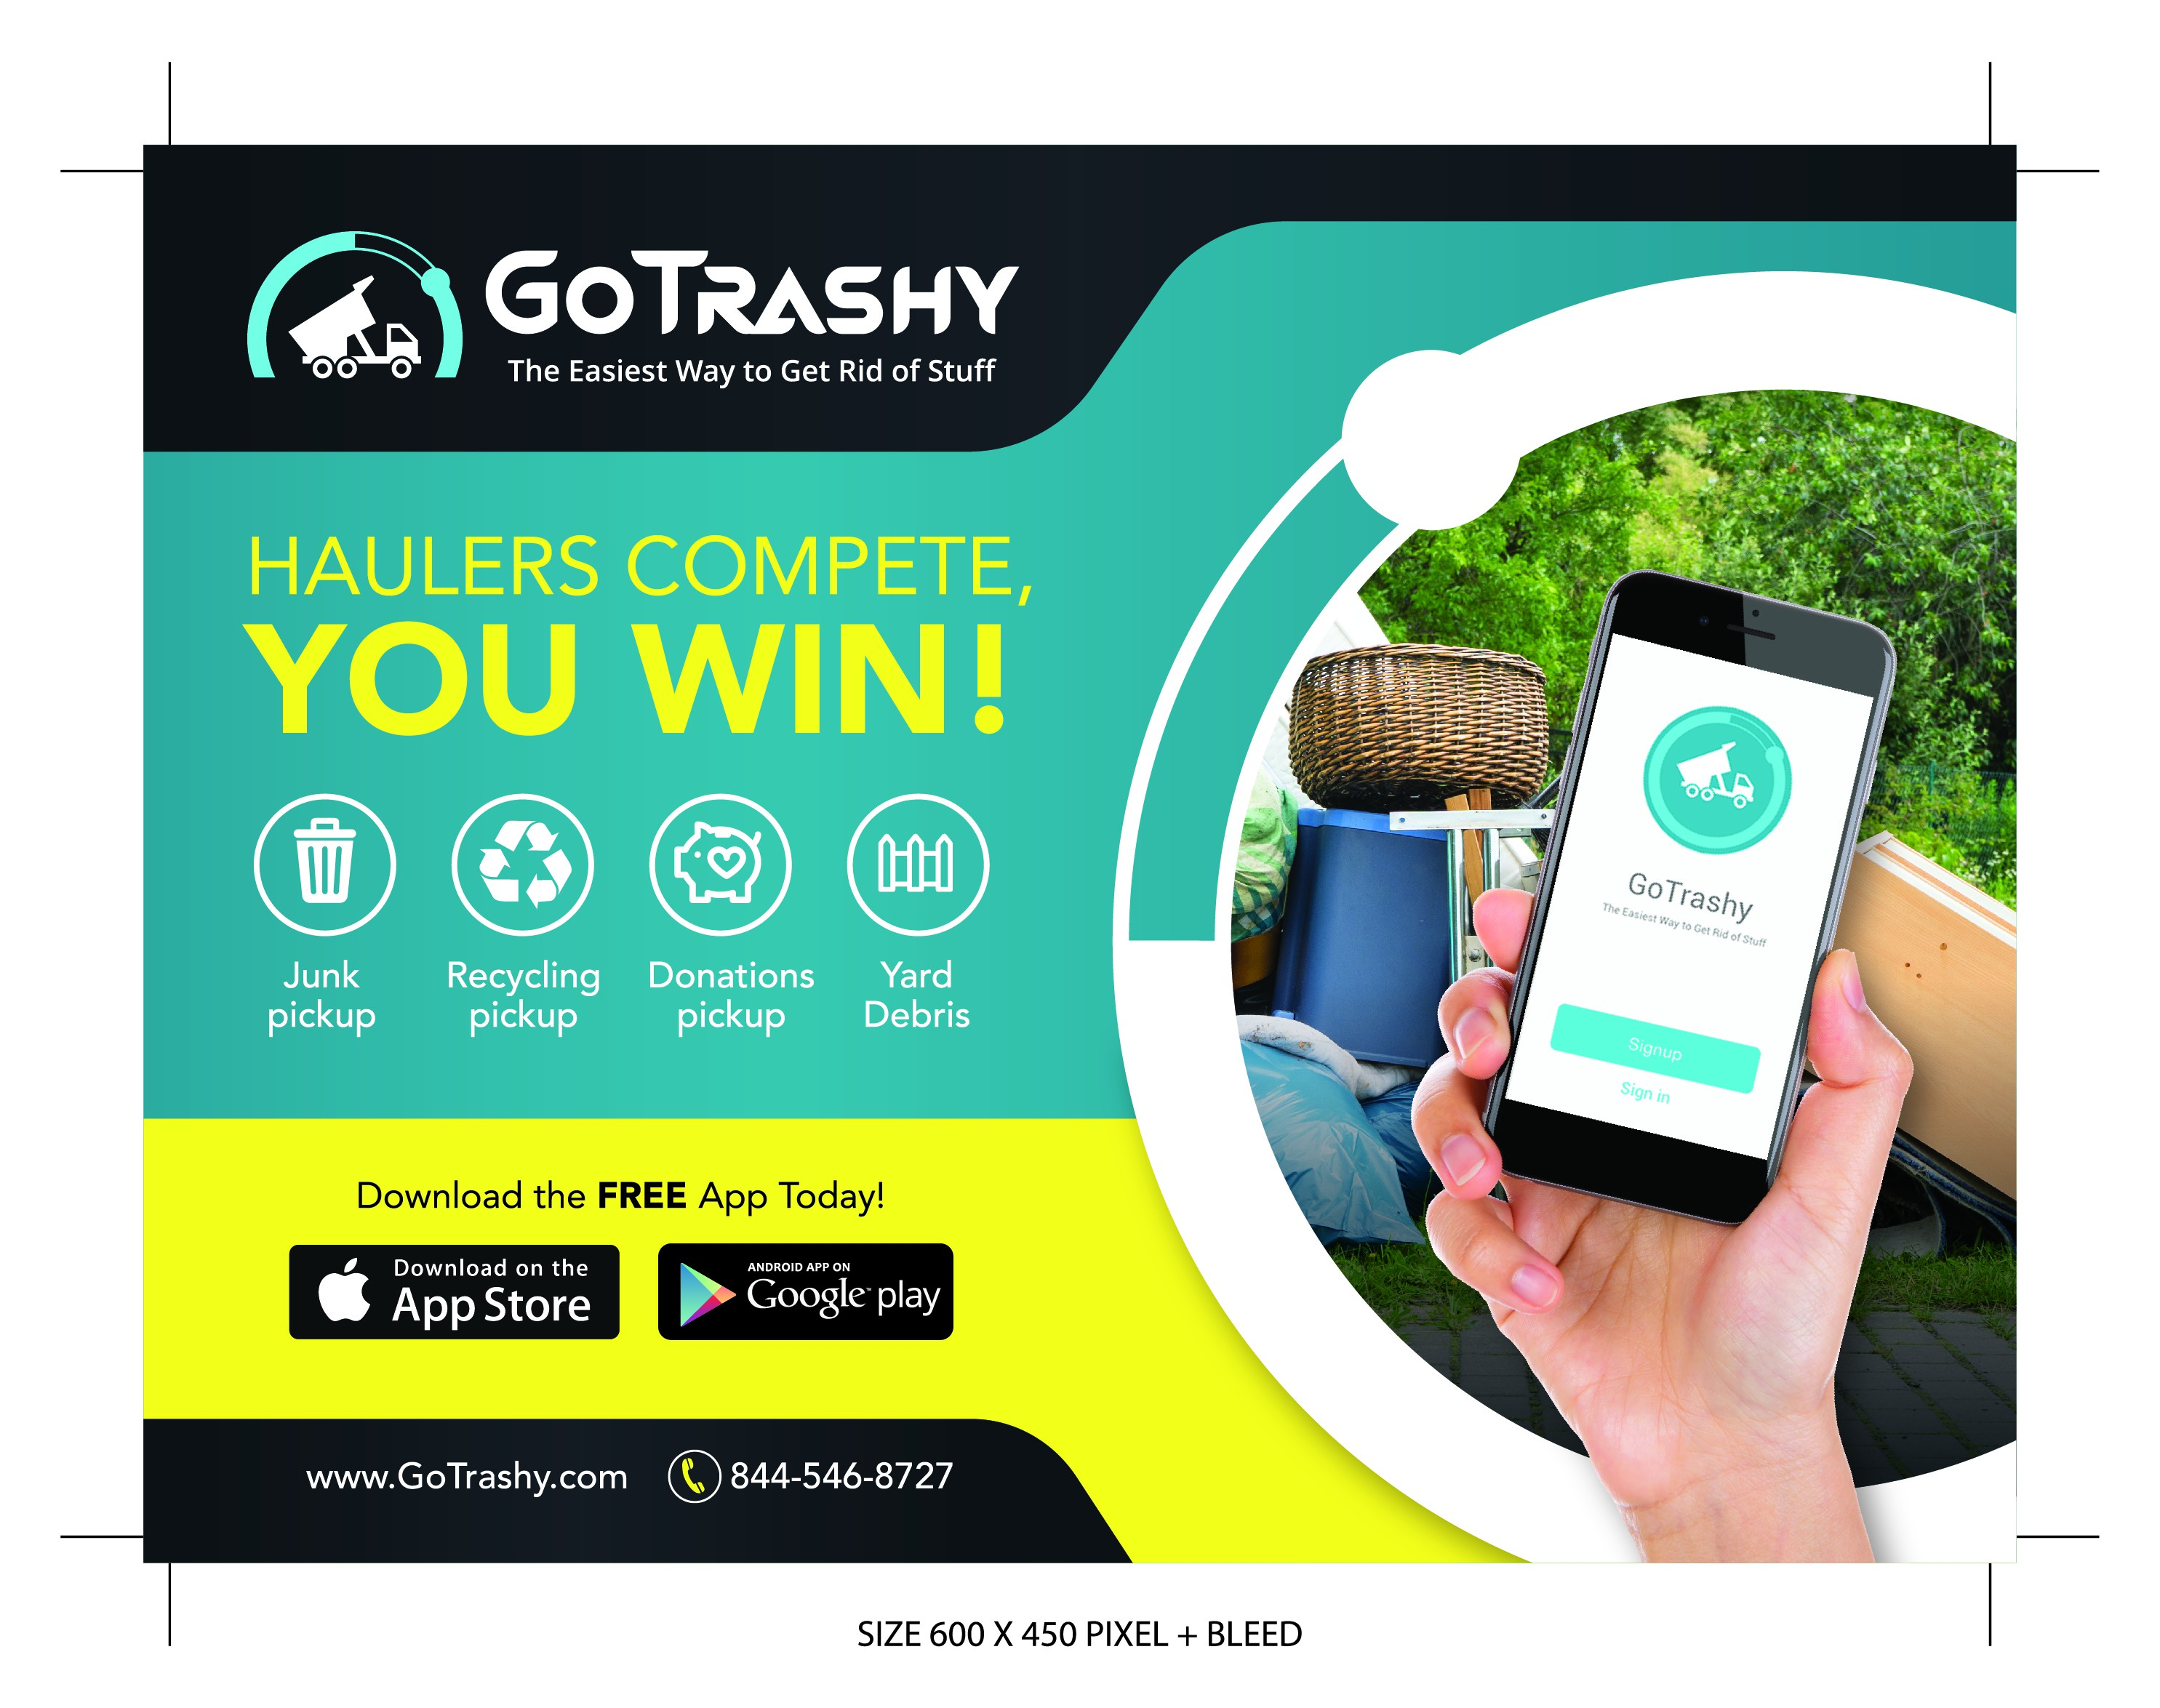 Go Trashy On Demand Junk Removal - Rapid Growth Start Up - Awesome Ad Needed!